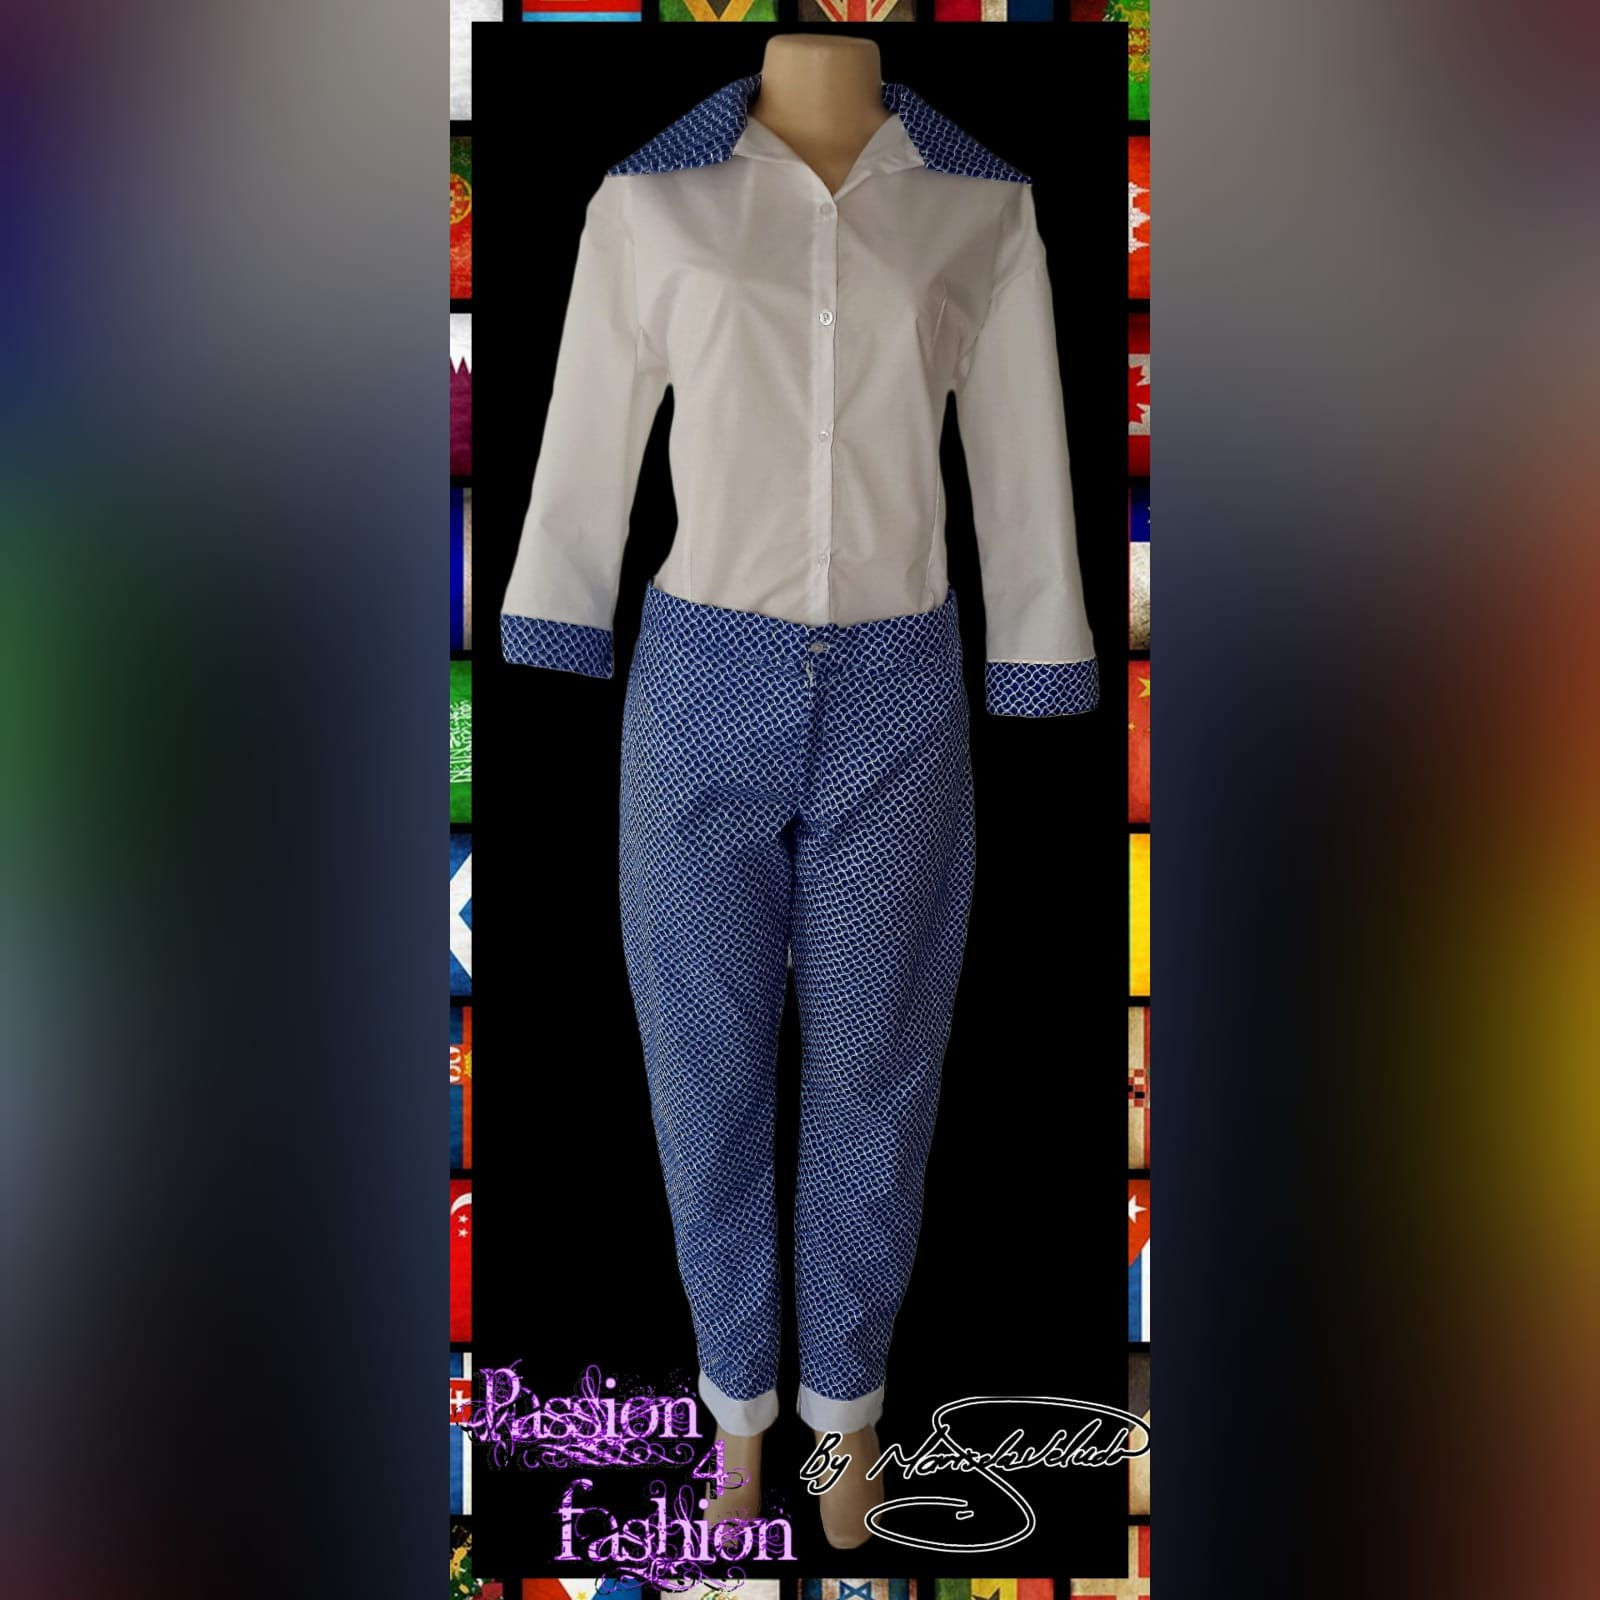 Blue & white modern traditional pants & blouse 1 blue and white modern traditional wear pants with white blouse trimmed in traditional blue and white fabric